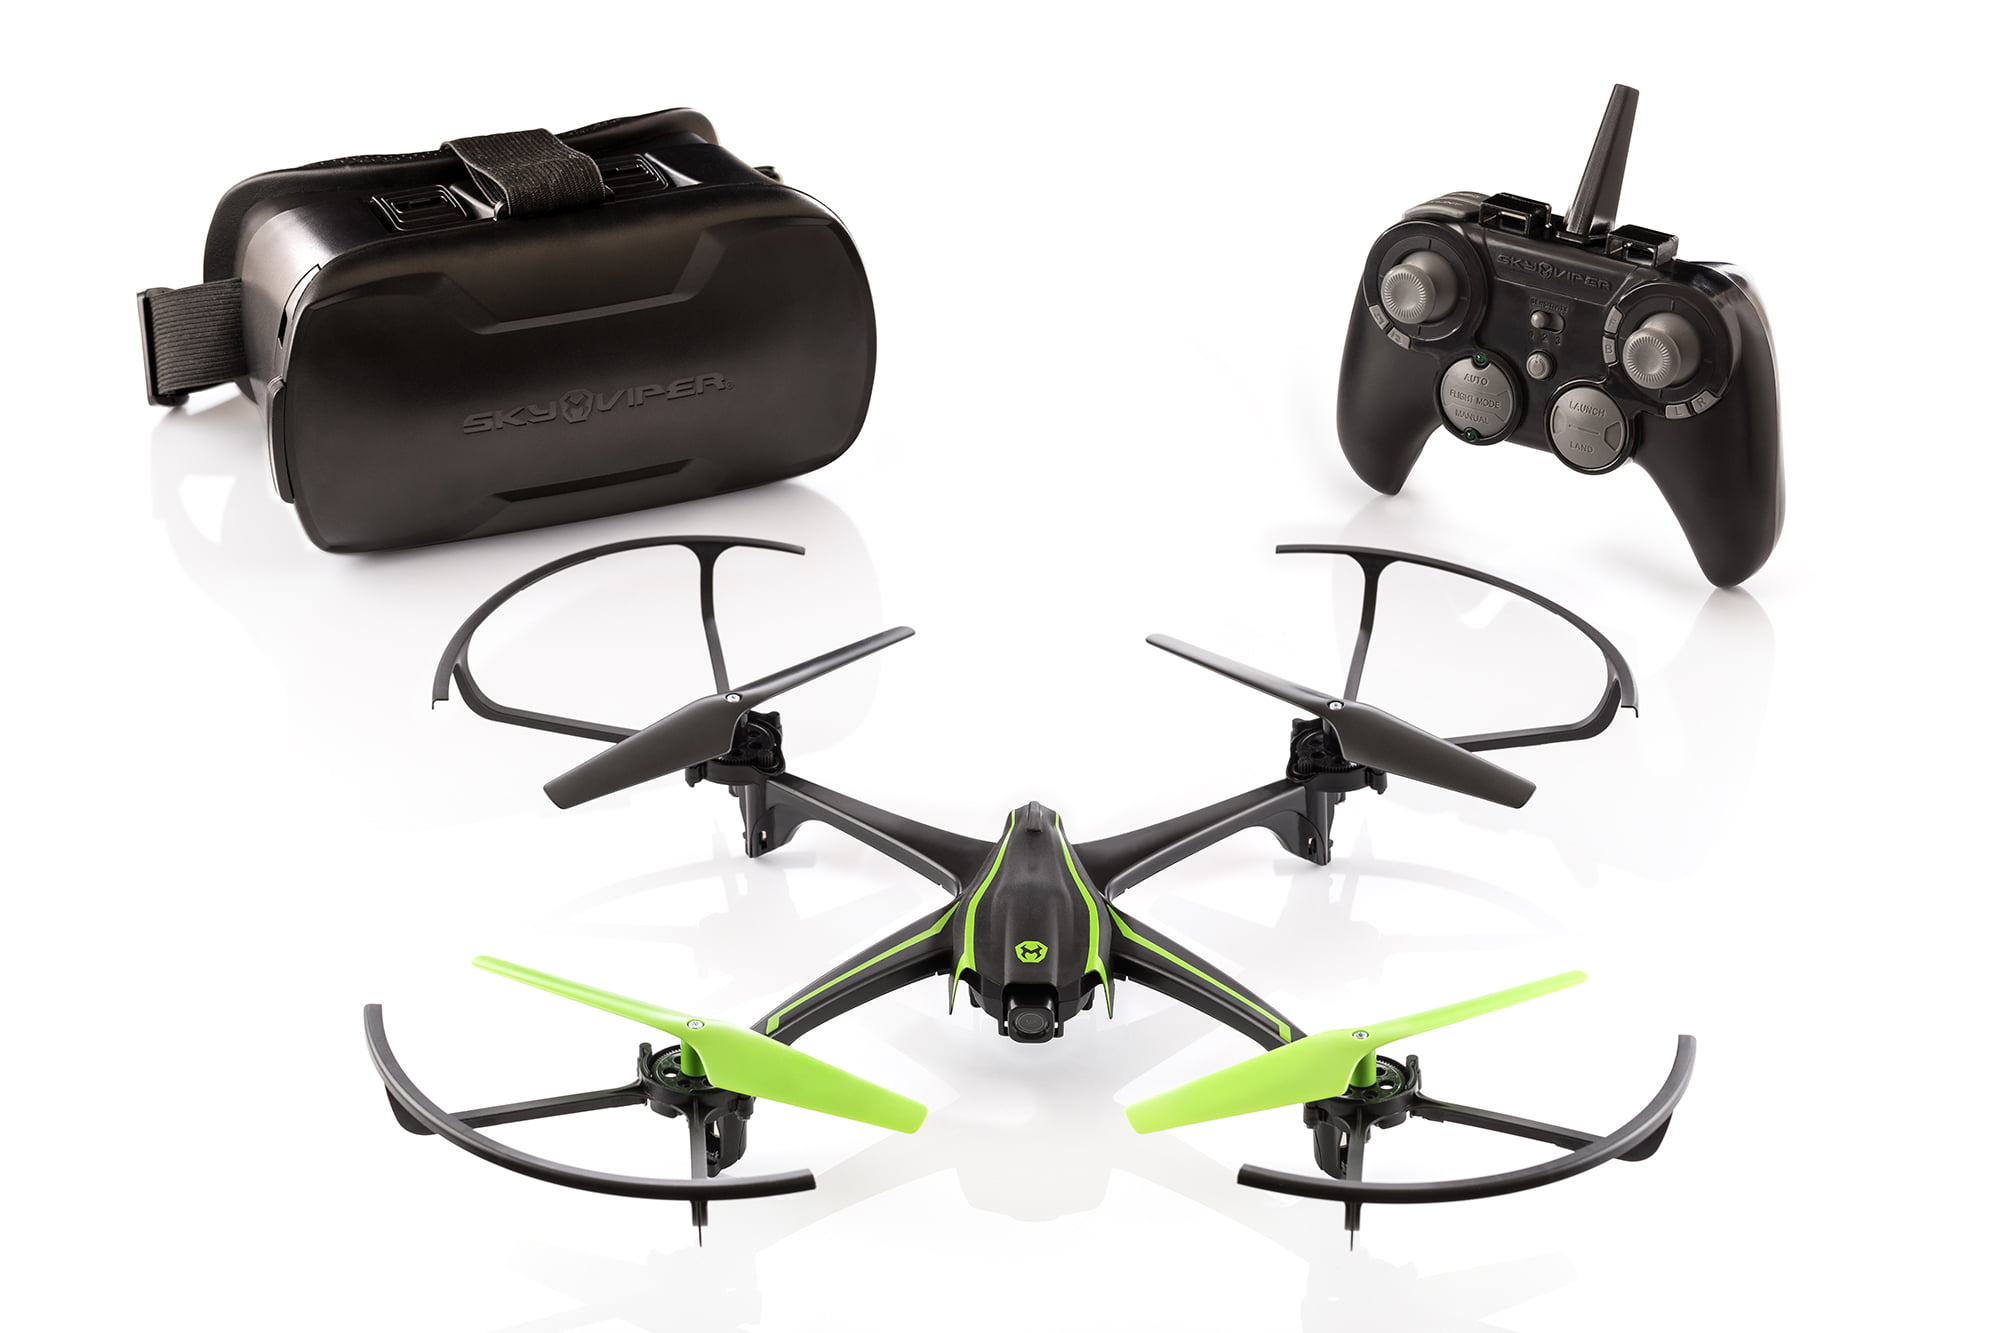 Sky Viper V2450 HD Video Streaming Drone with FPV by SKYROCKET TOYS LLC